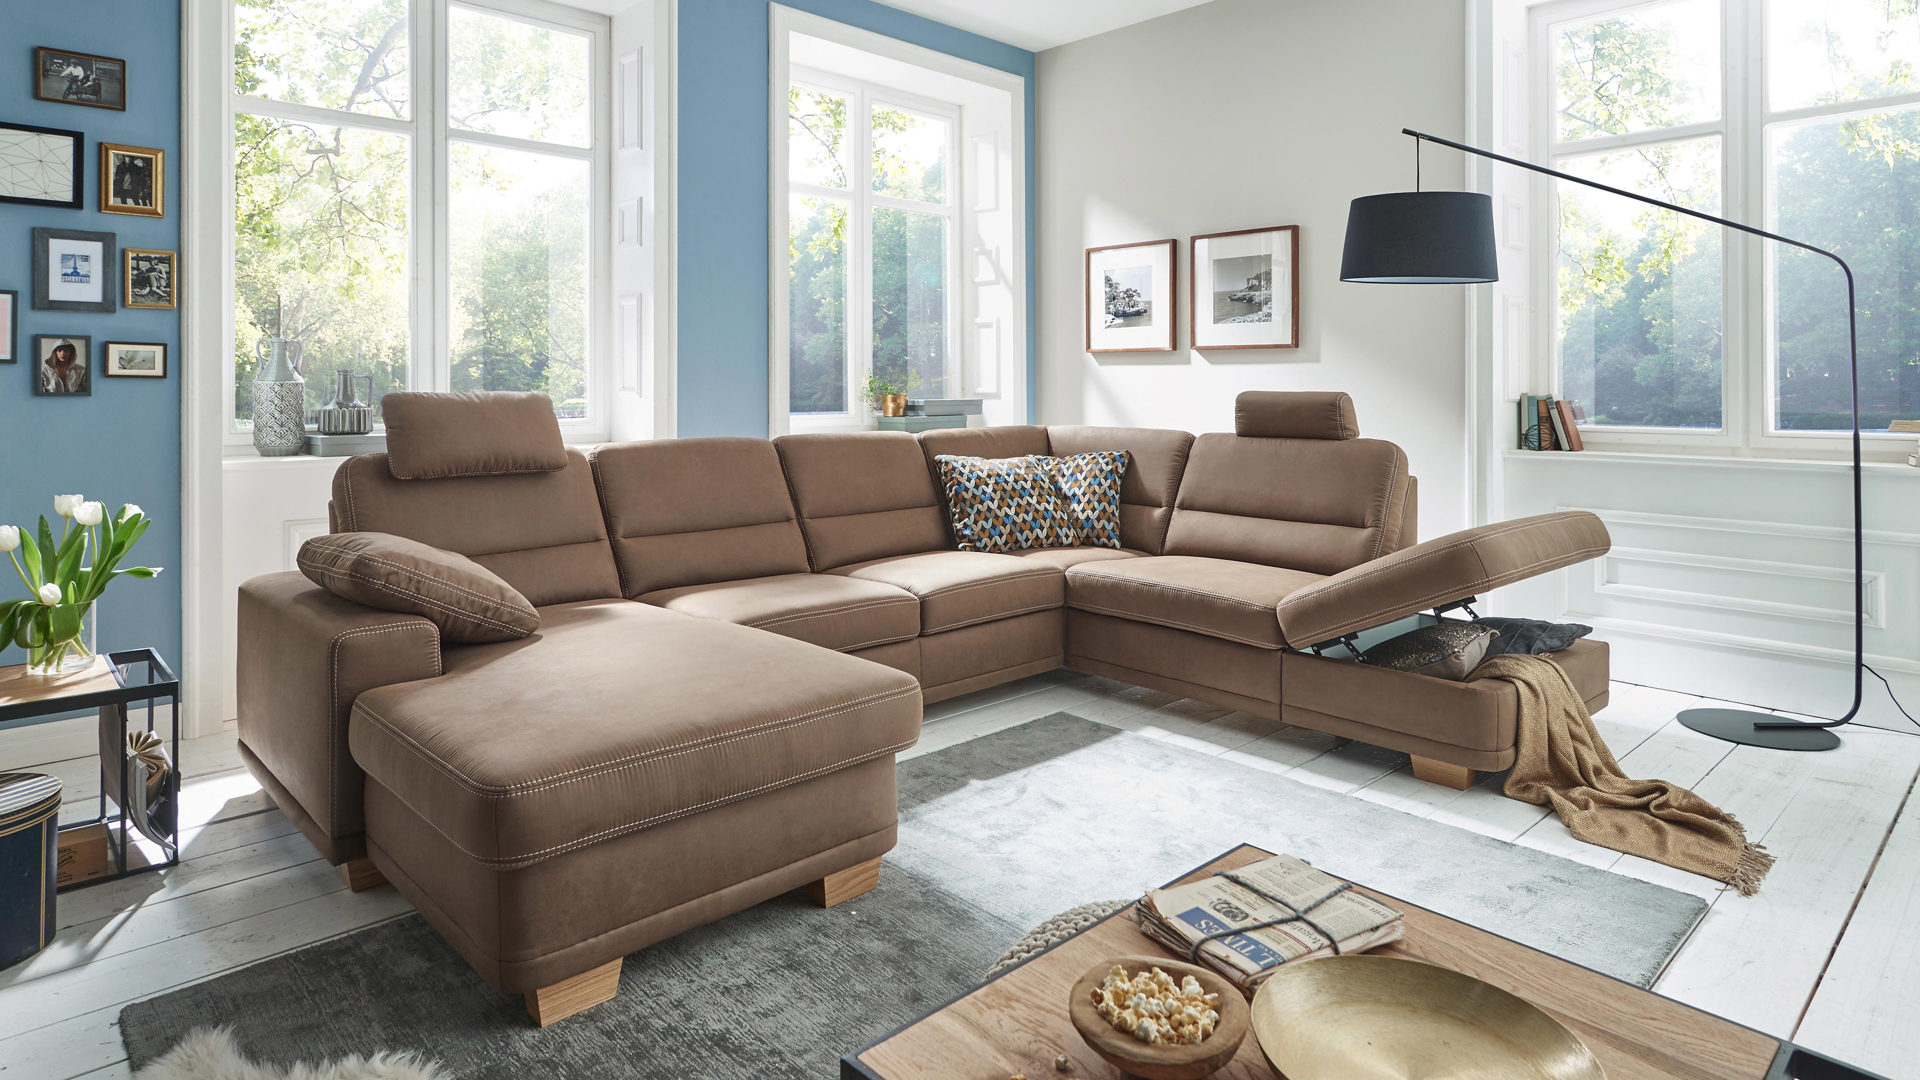 Wohnlandschaft U Form 300 Cm Breit Ecksofa 300 Cm Best Modulmaster Ecksofa Facility S In Uform With